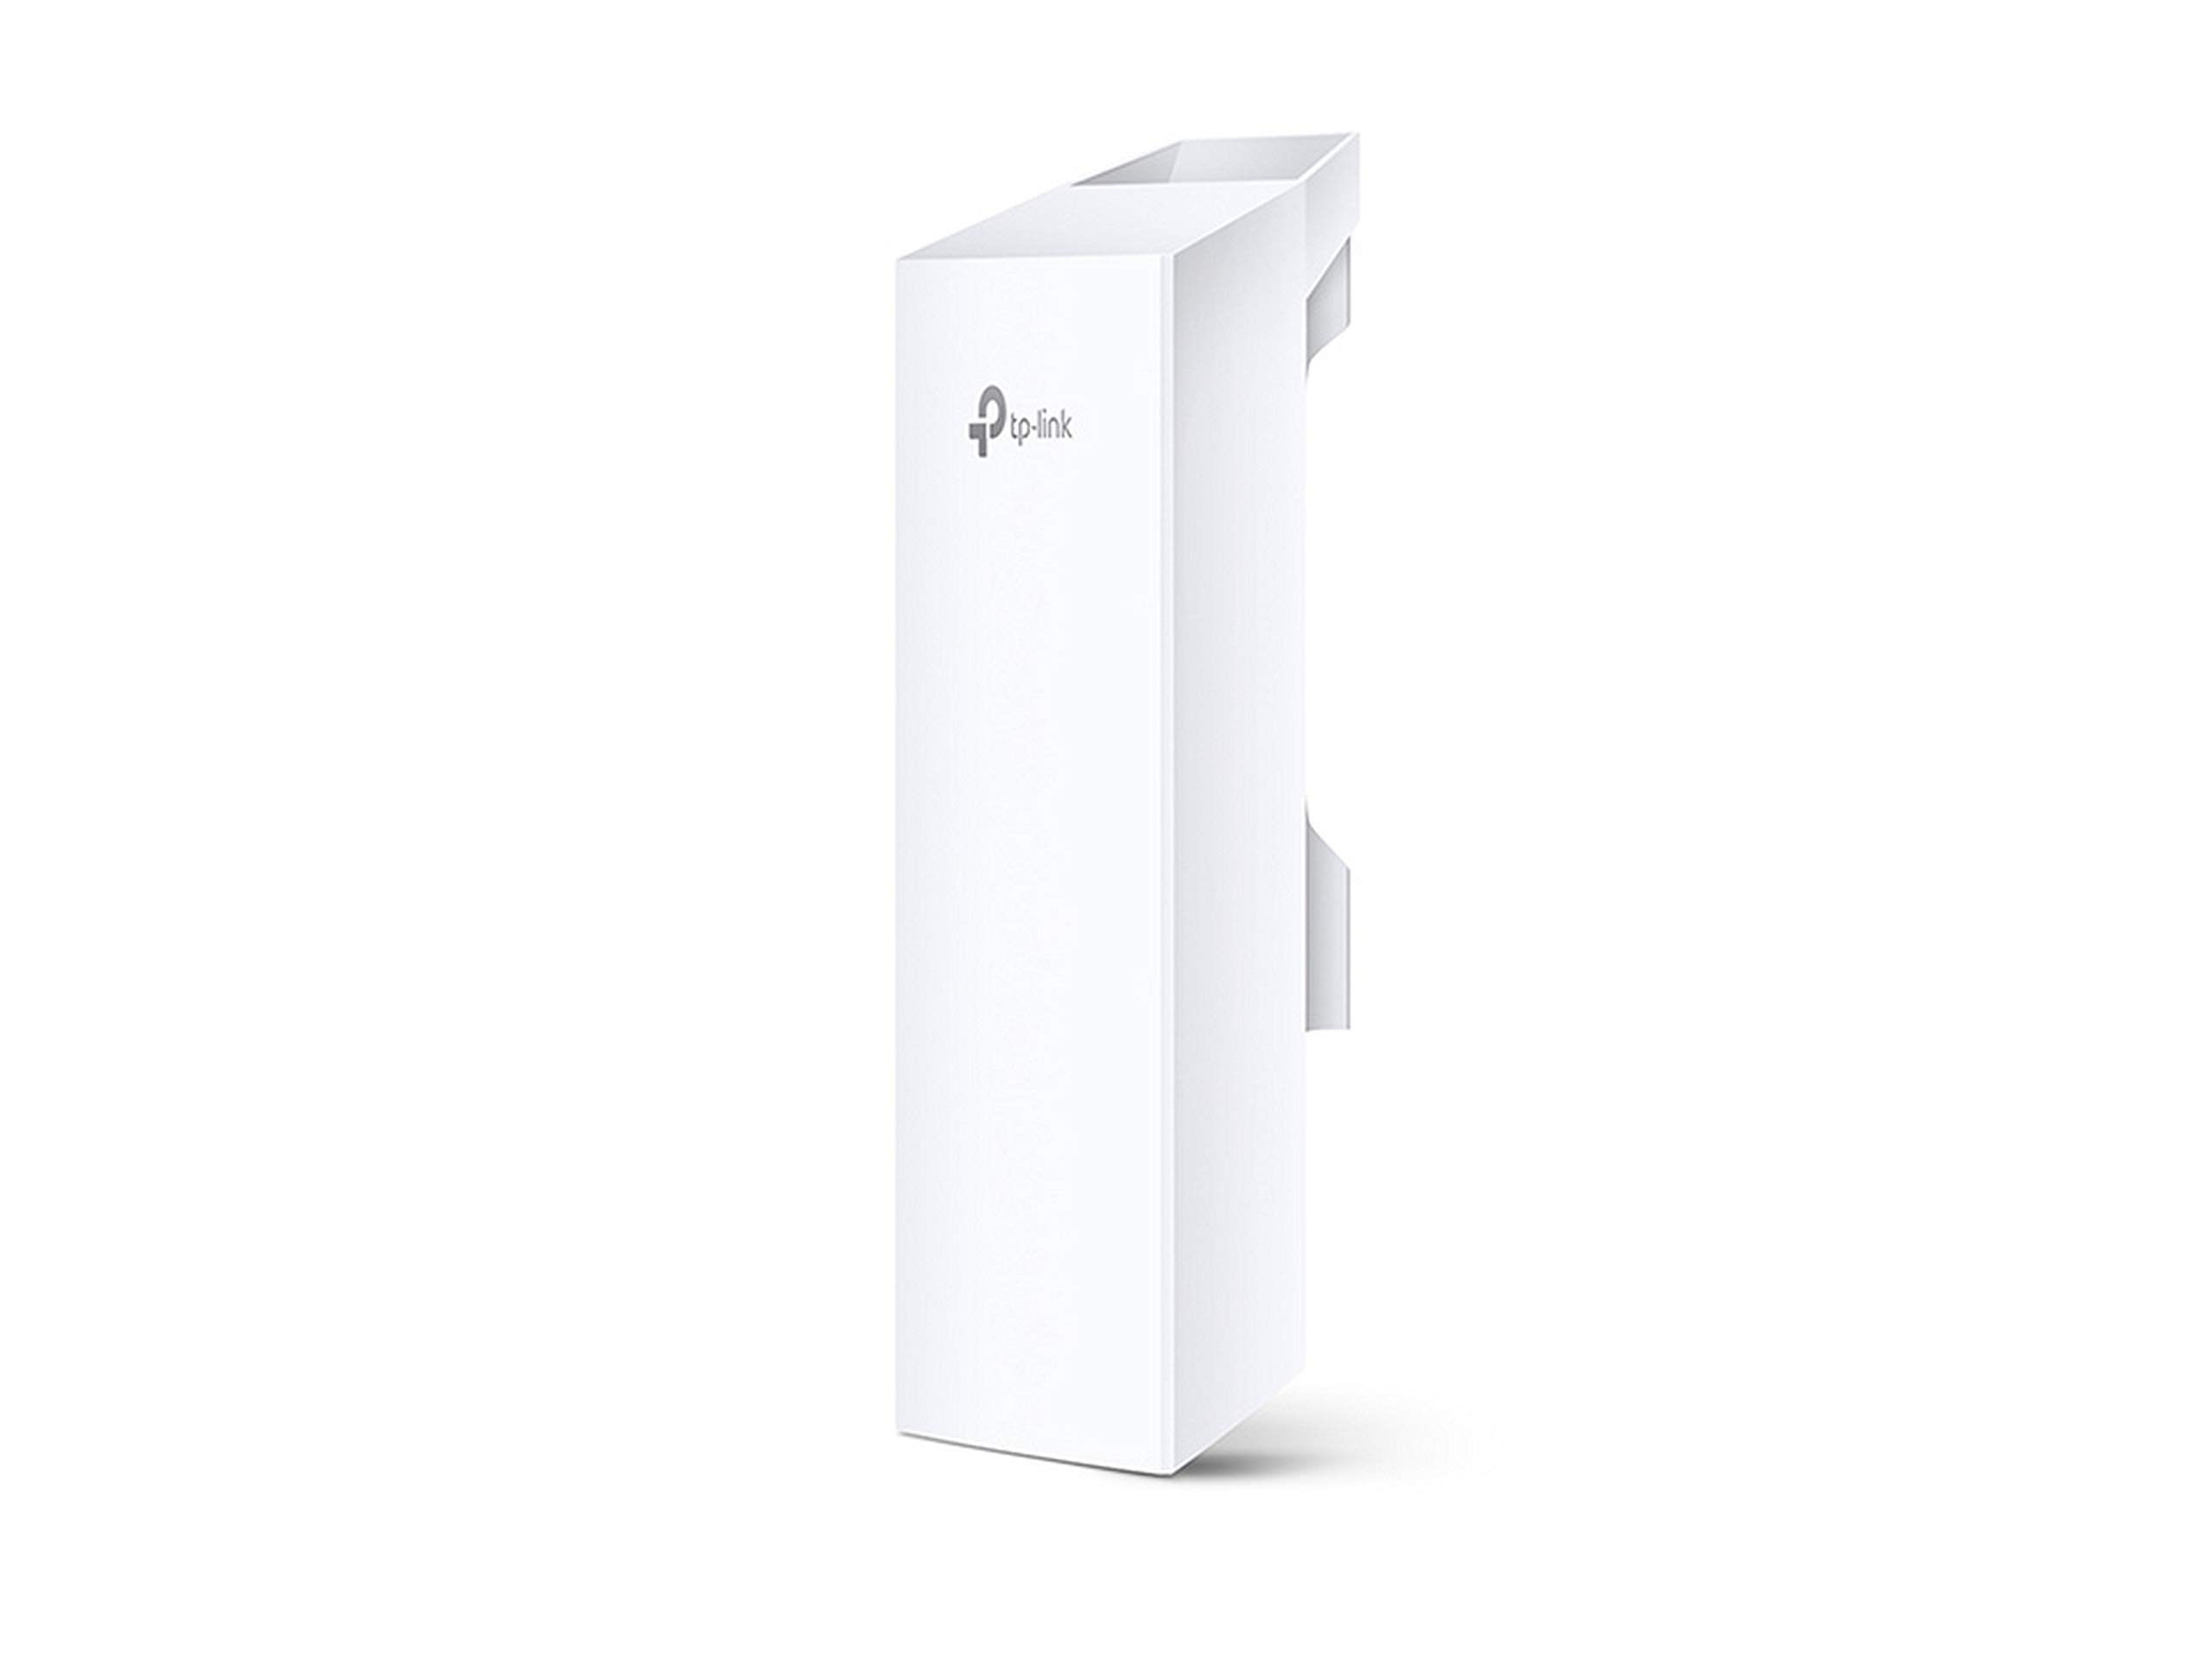 TP-Link Long Range Outdoor Wifi Transmitter - 5GHz, 300Mbps, High Gain Mimo Antenna, 15km+ Point to Point Wireless Transmission, Poe Powered W/ Poe Adapter Included, Wisp Modes (CPE510) by TP-Link